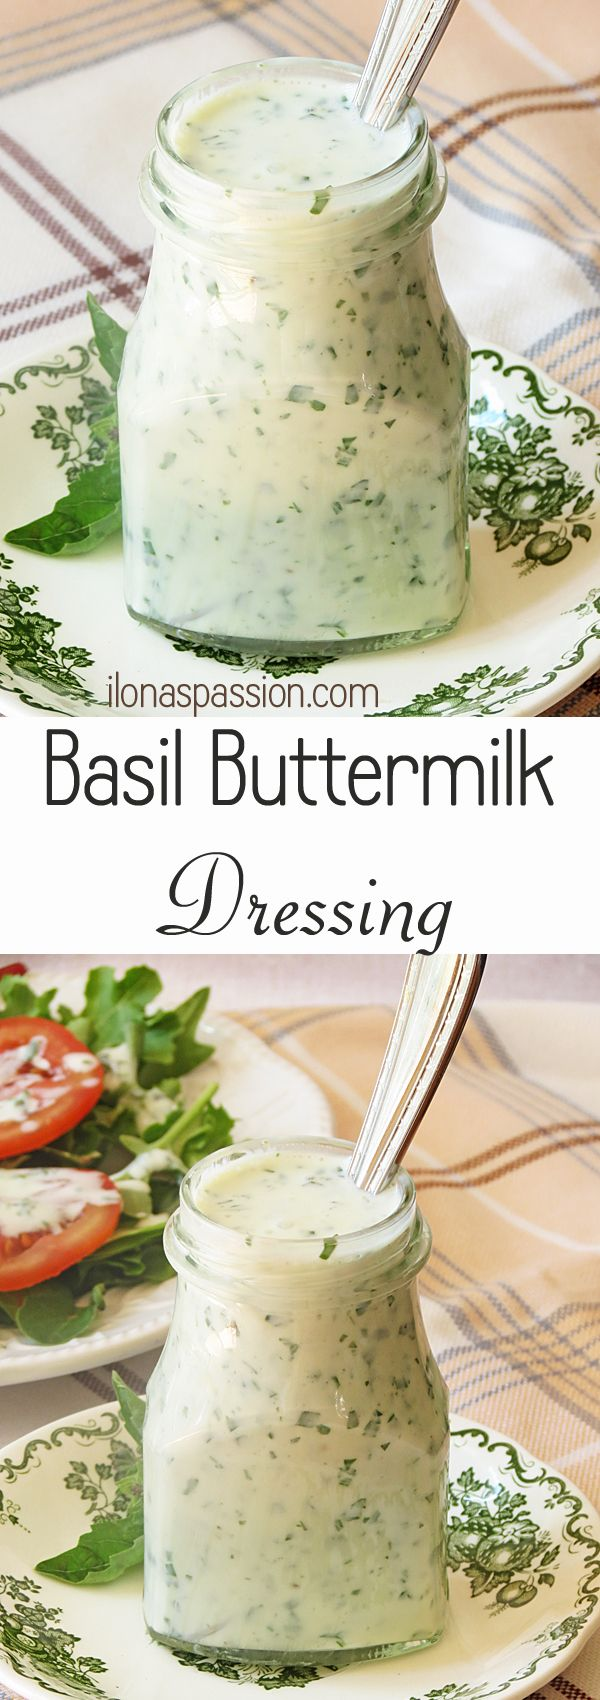 Healthy Basil Buttermilk Dressing by ilonaspassion.com #basil #dressing #buttermilk #healthy